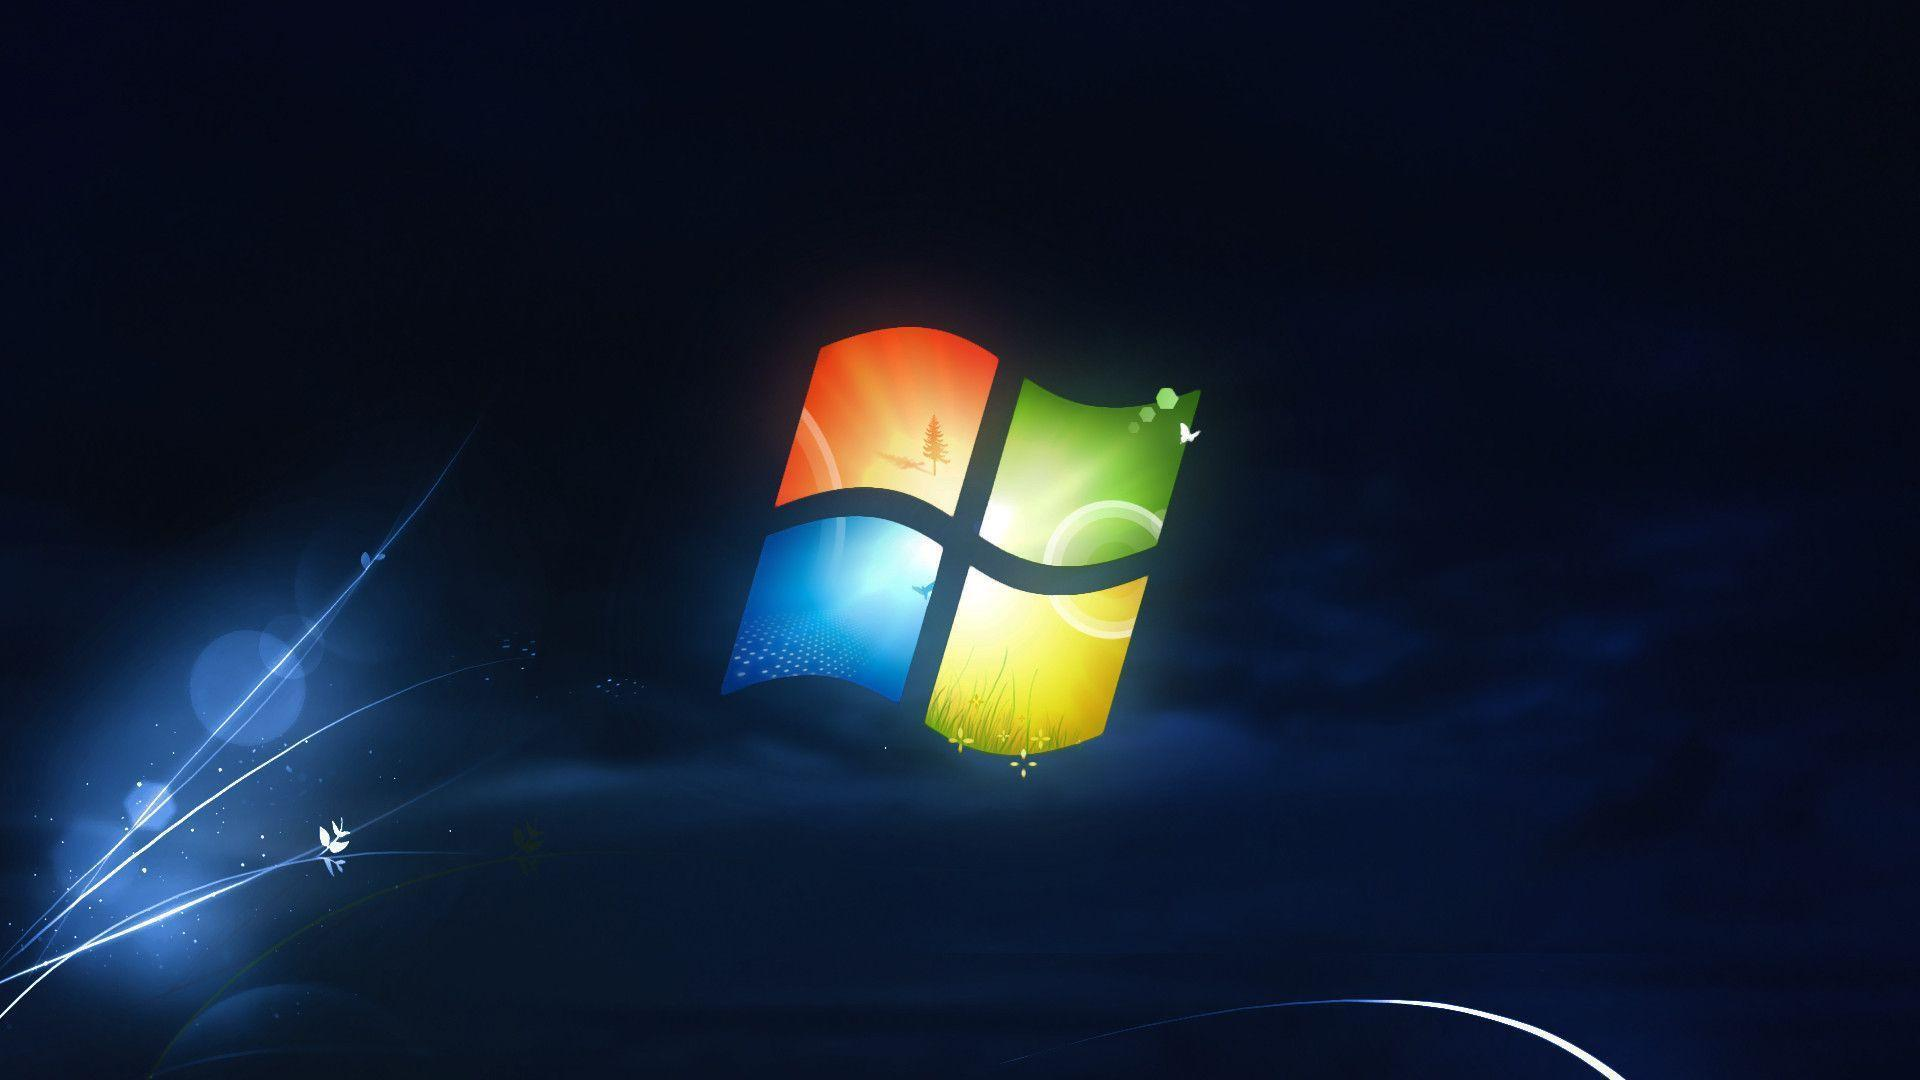 microsoft windows wallpapers by gifteddeviant - photo #28